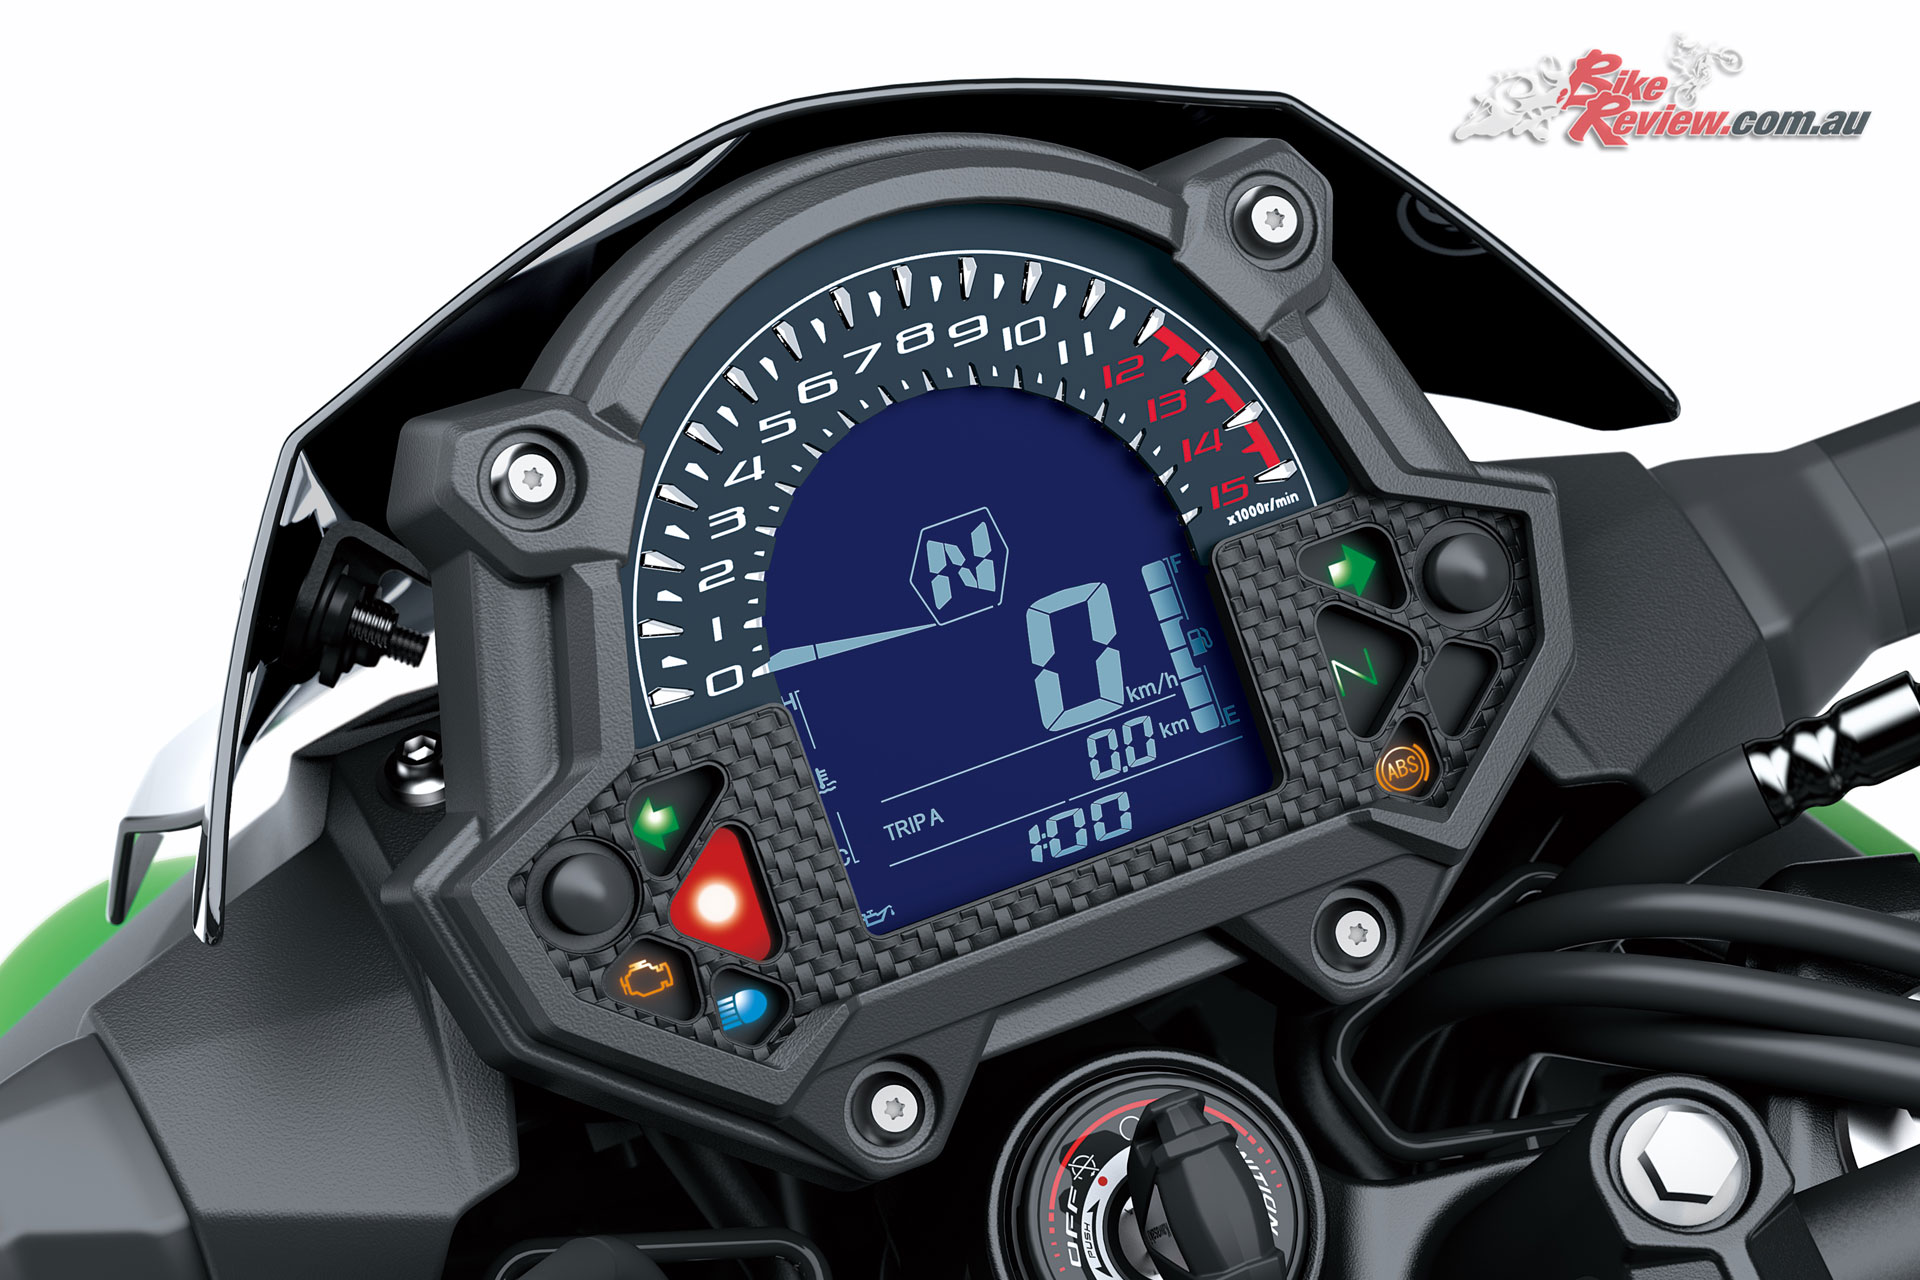 The Z400's stylish easy to read dash